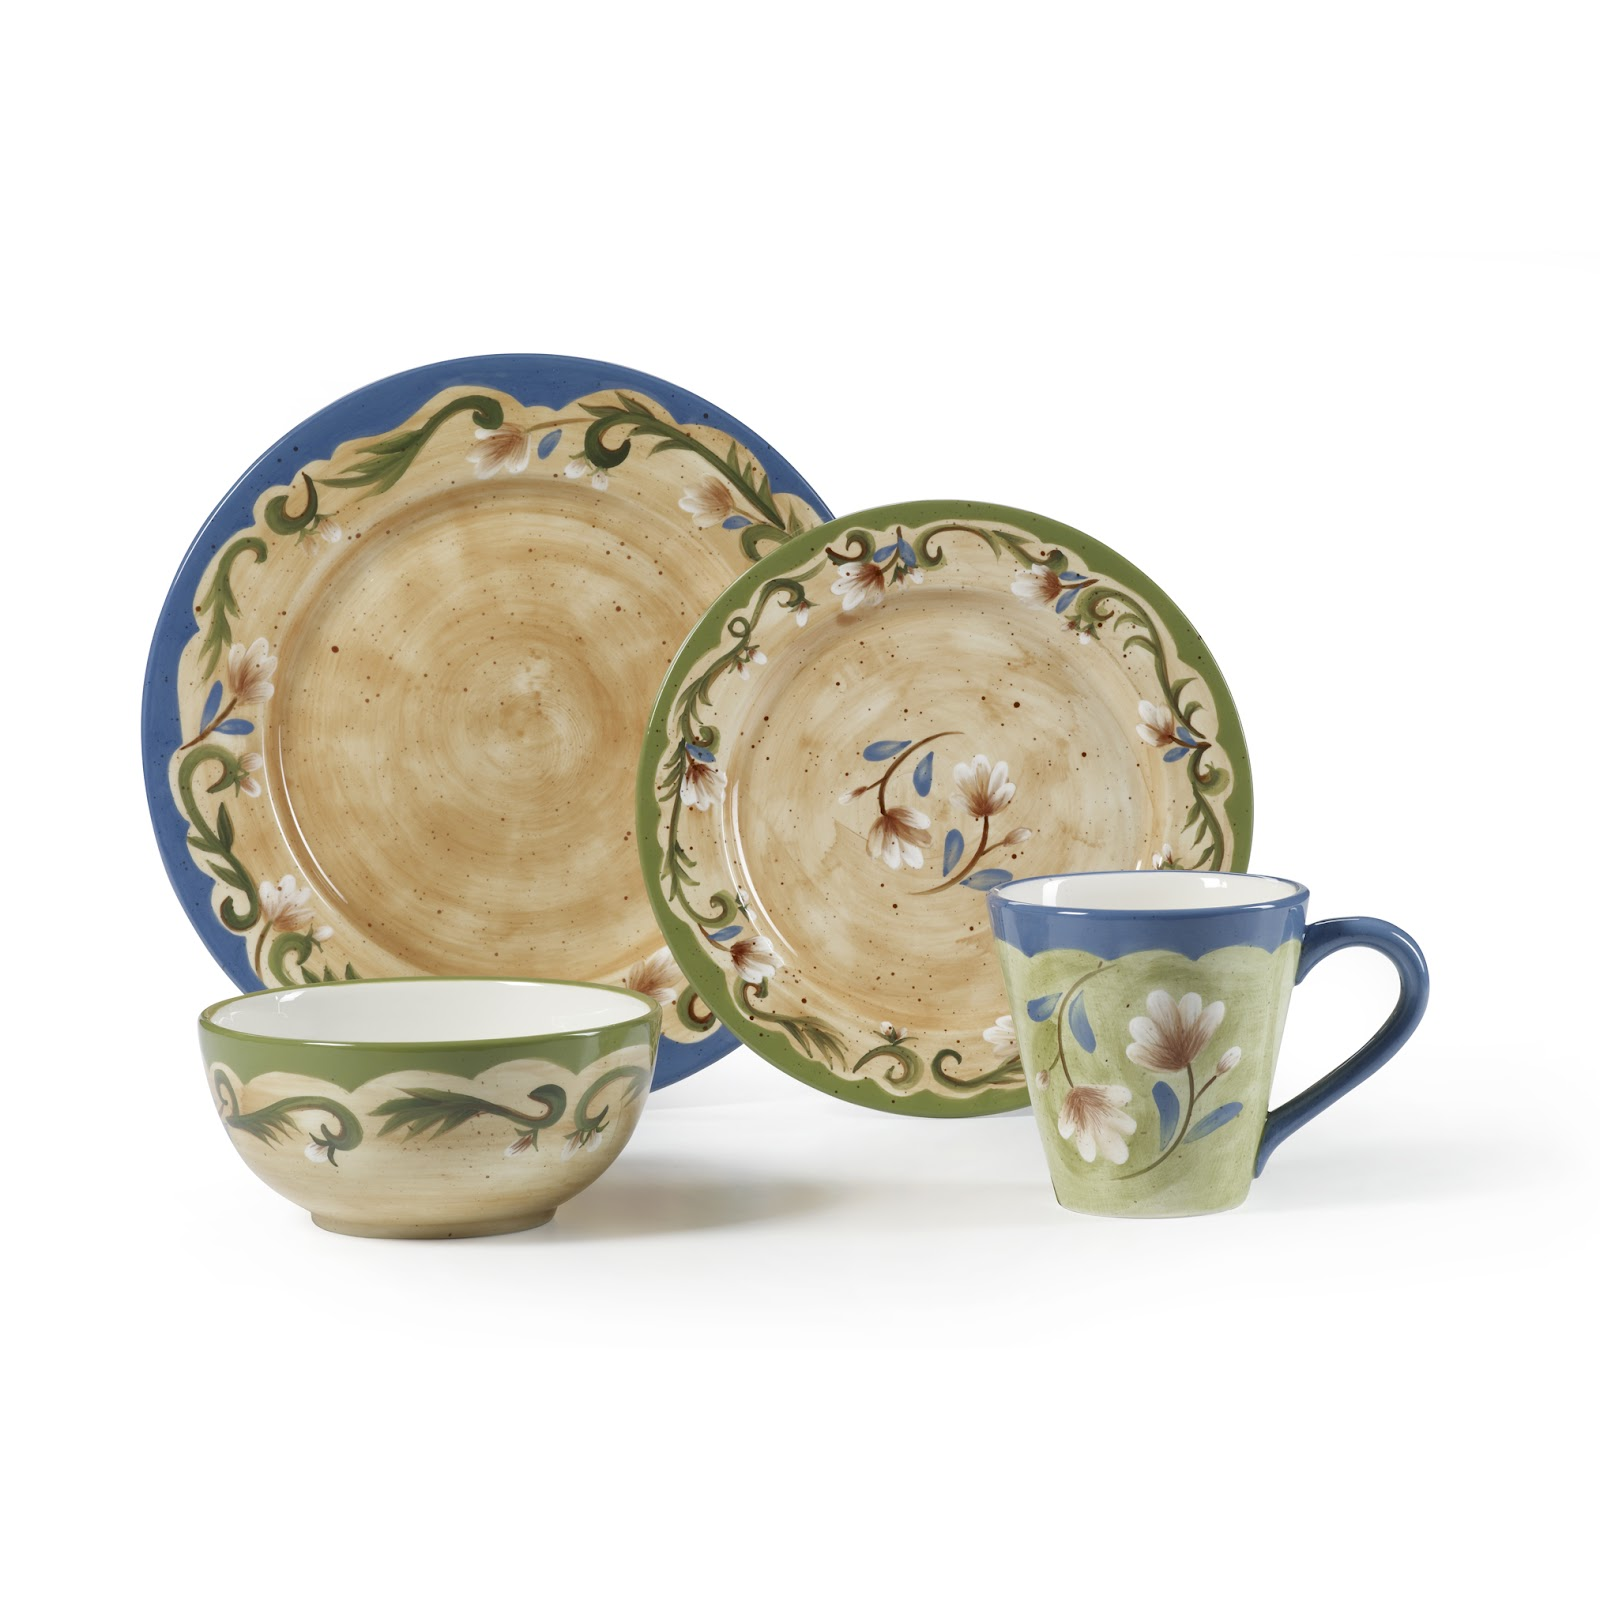 Last Holidays season I did a review for Pfaltzgraff and their Winterberry pattern dinner ware designu2026 For almost 200 years the Pfaltzgraff brand has been ...  sc 1 st  Born 2 Impress & Born 2 Impress Everything Home Event -Pfaltzgraff Tuscany Inspired ...